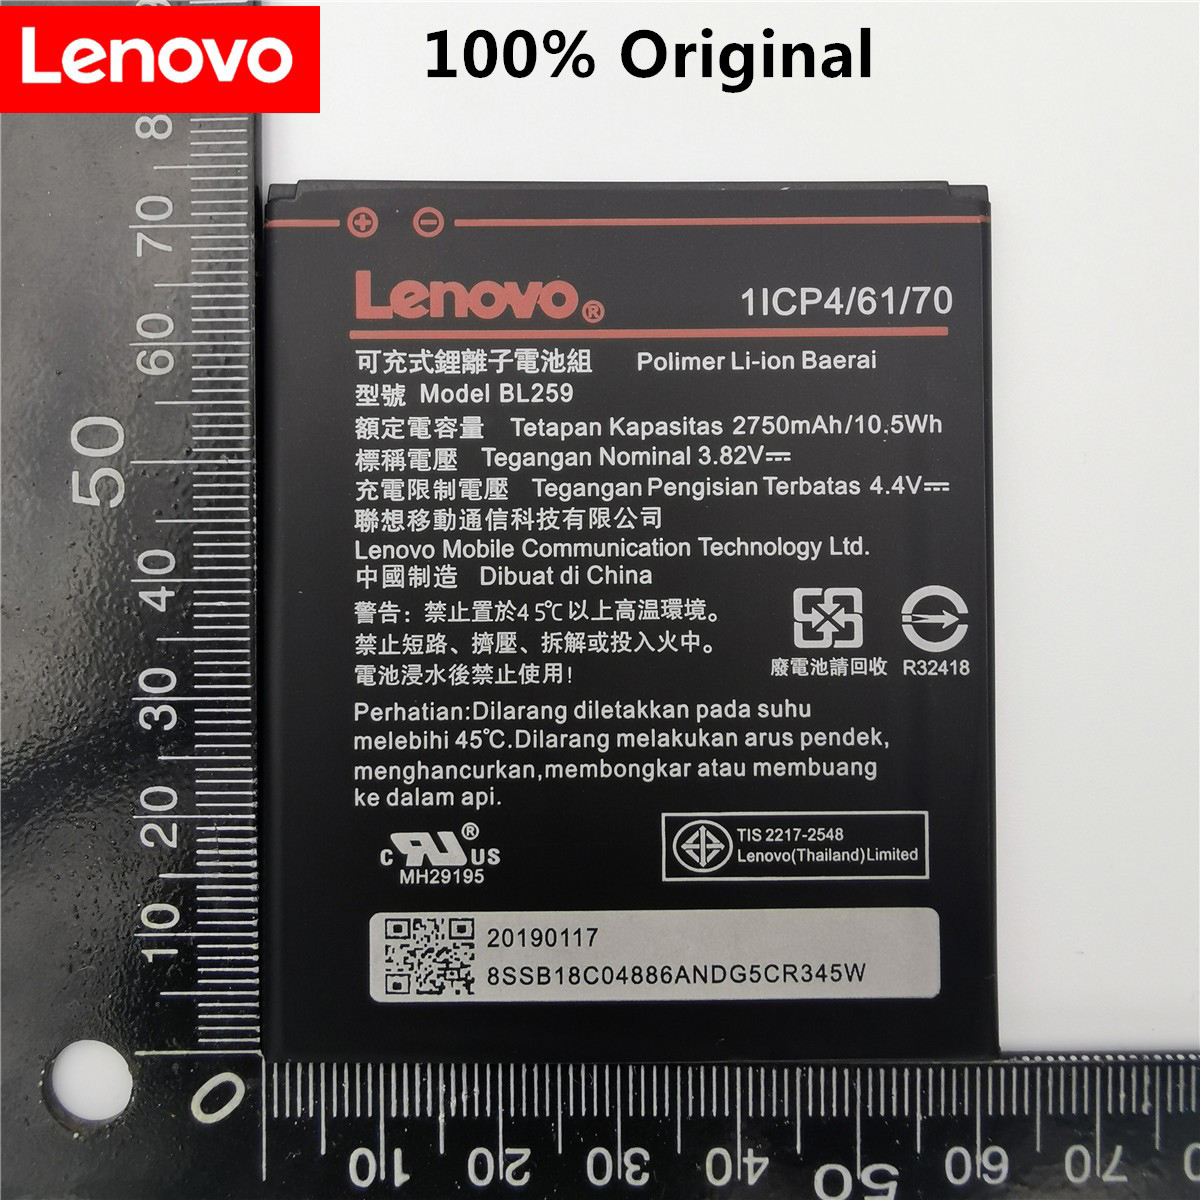 100% Original Tested 2750mAh BL259 For Lenovo Lemon 3 3S K32C30 K32c36 Vibe K5 / K5 Plus / A6020a40 A6020 A40 A 6020a40 Battery